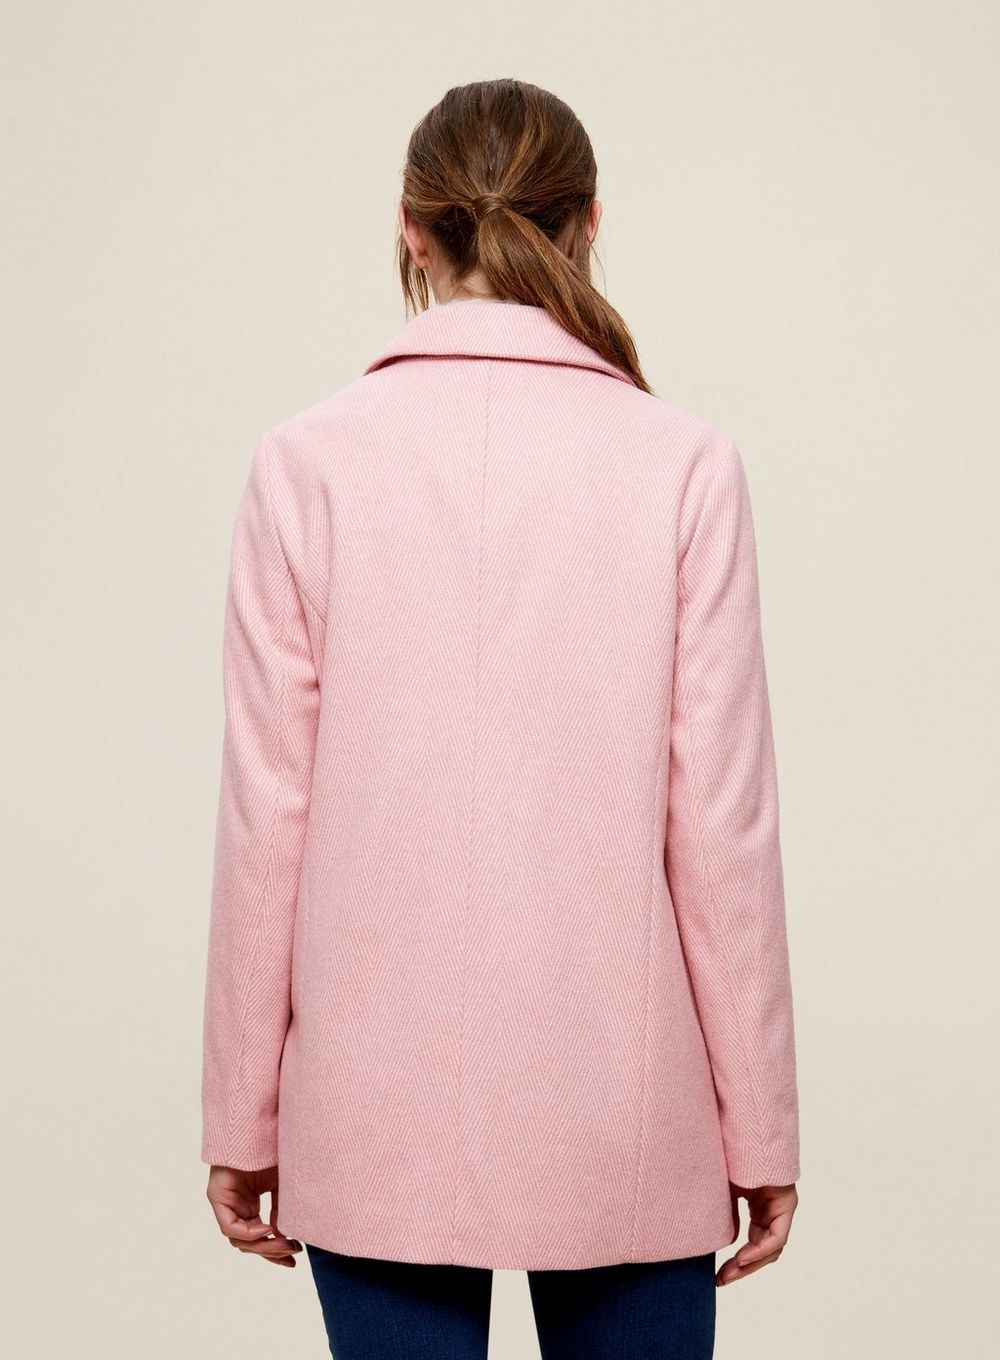 Dorothy Perkins Womens Pink Double Breasted Blazer Coat Jacket Outwear Top